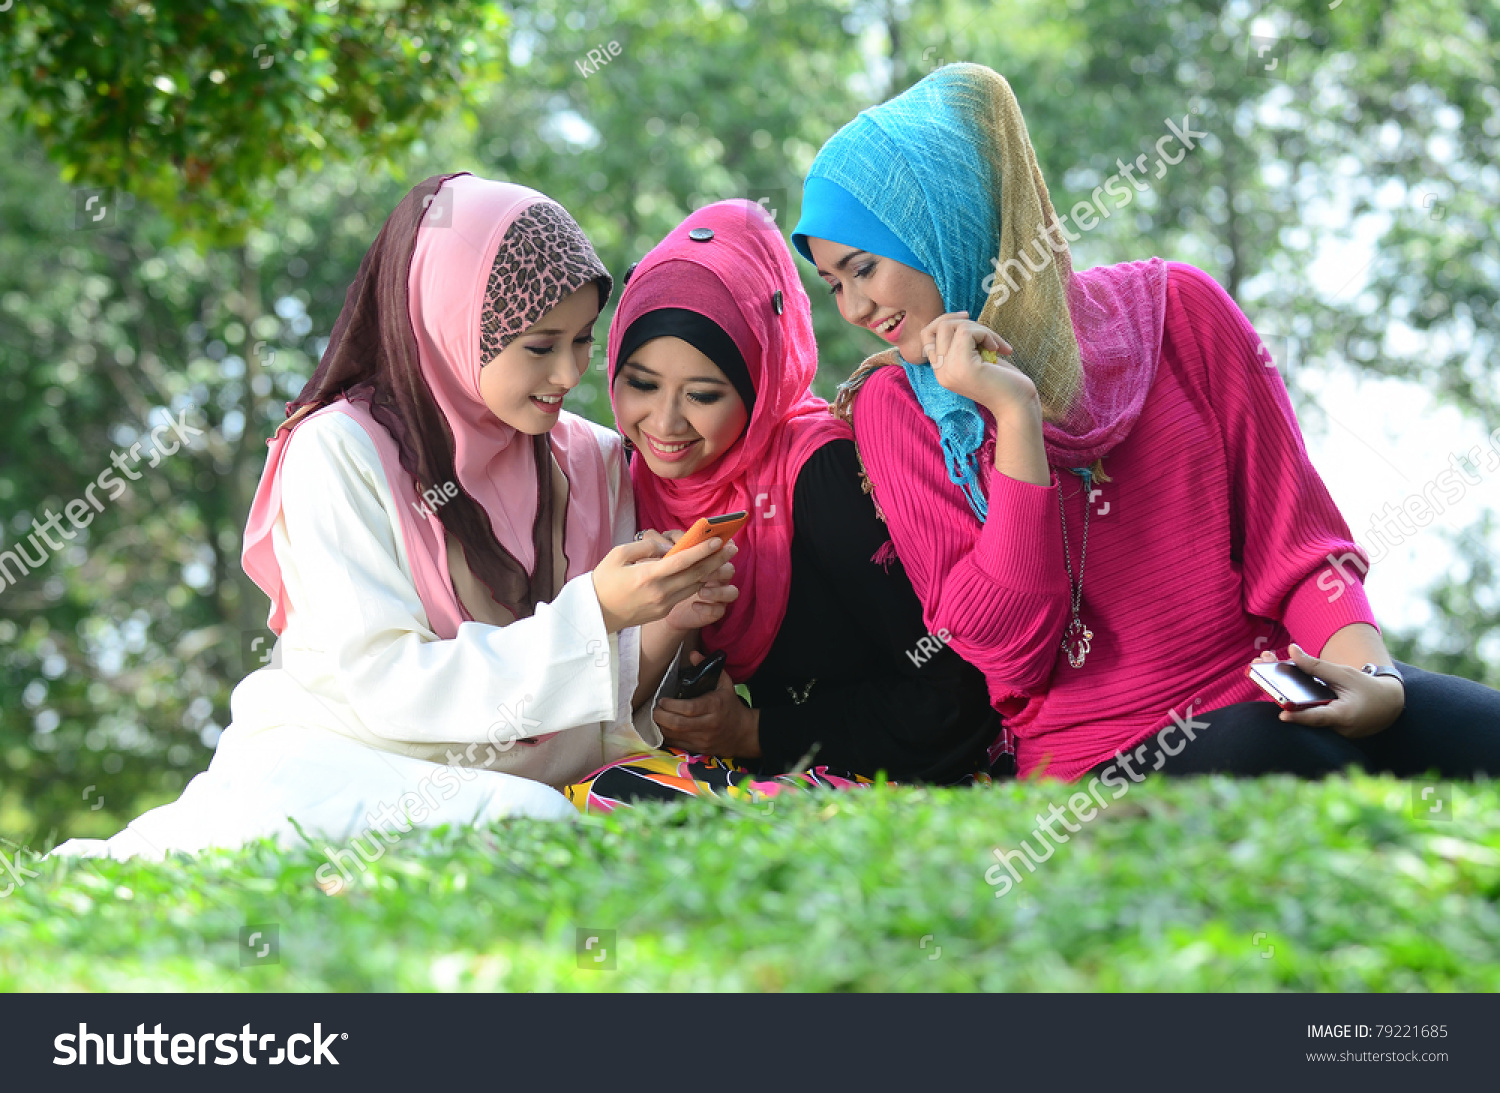 terrace park muslim single women By clicking sign up, i agree to receive transactional and promotional emails from matchcom i understand that i am free to withdraw consent at any time.